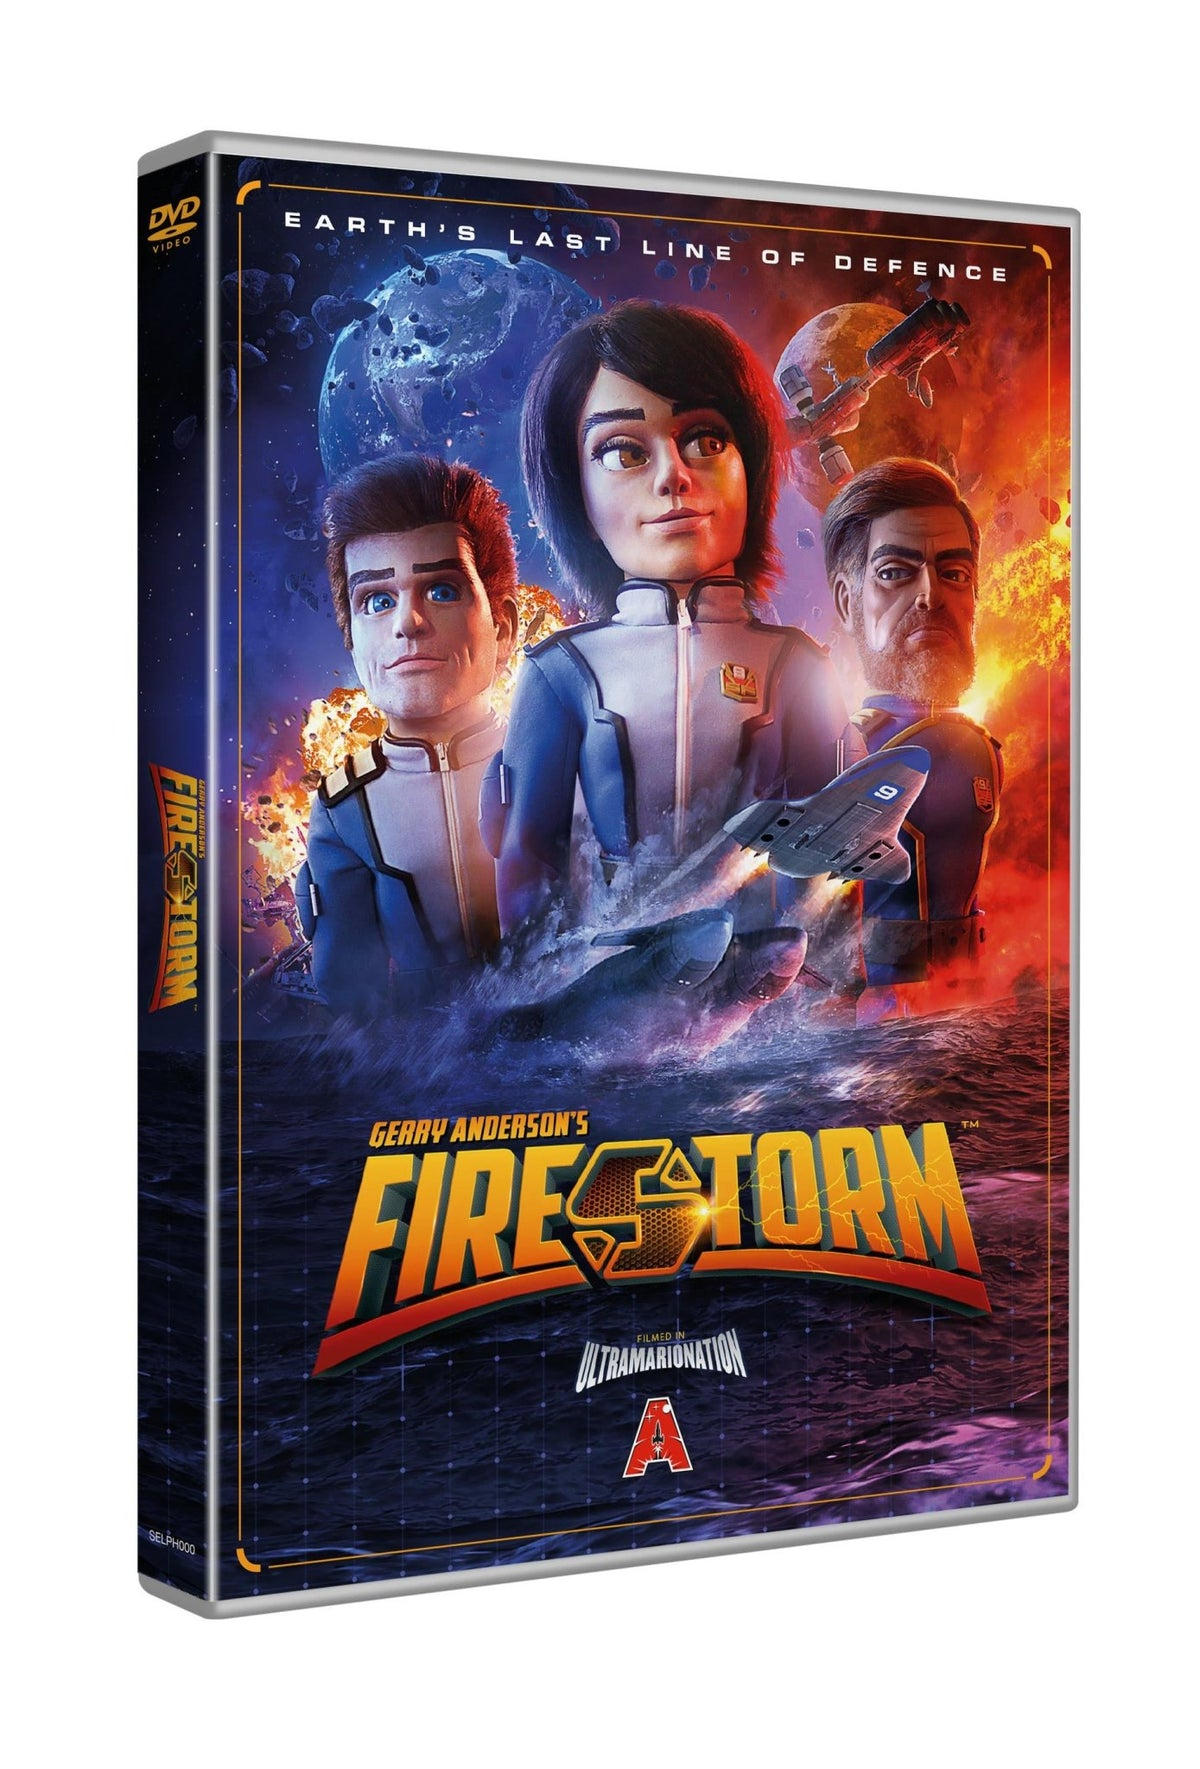 Firestorm (Blu-ray or DVD)(Blu-ray region free/DVD NTSC or PAL) - The Gerry Anderson Store